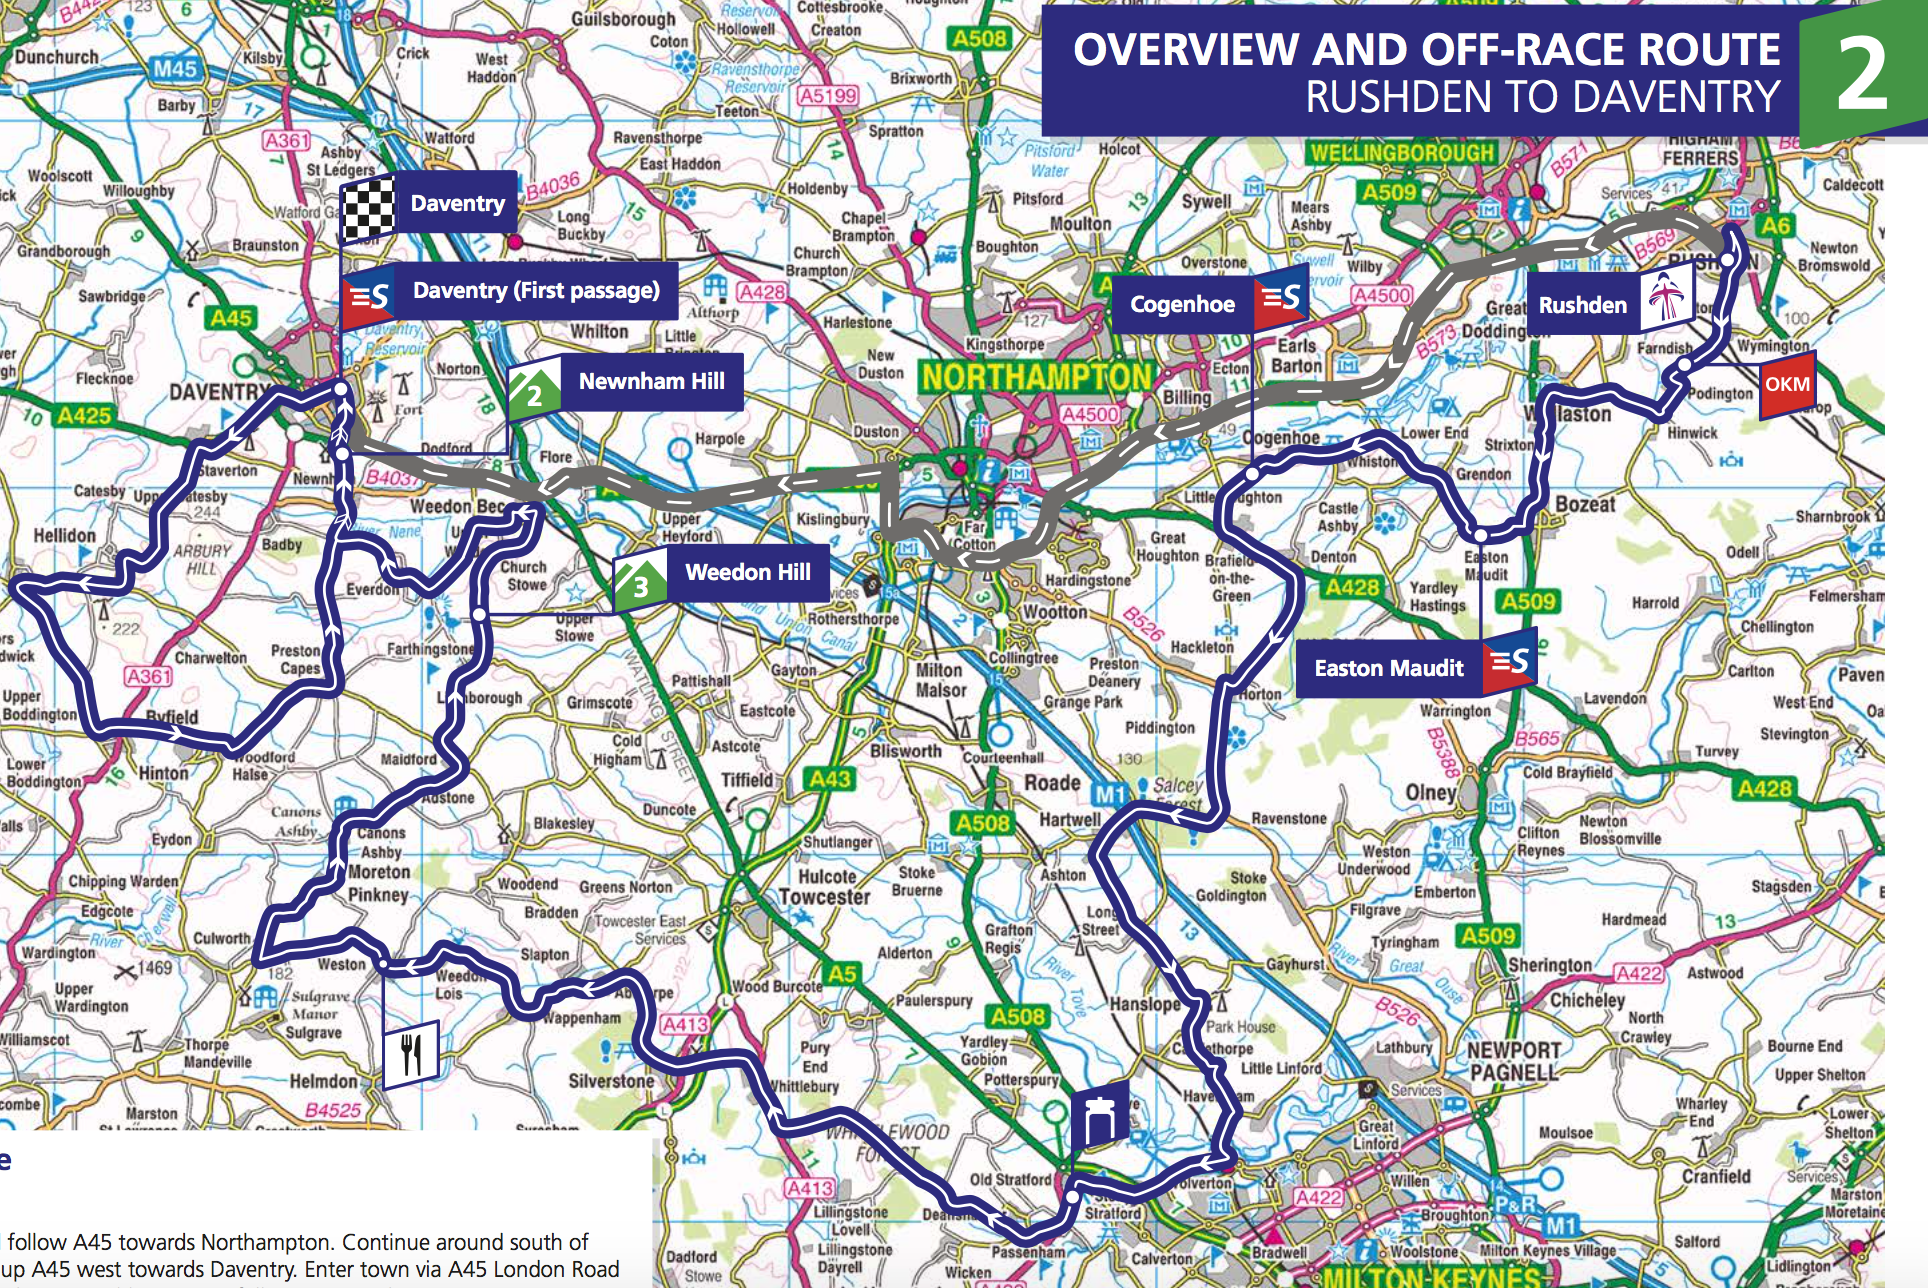 Stage 2. 143.9km from Rushden to Daventry. Race starts at 10:30.